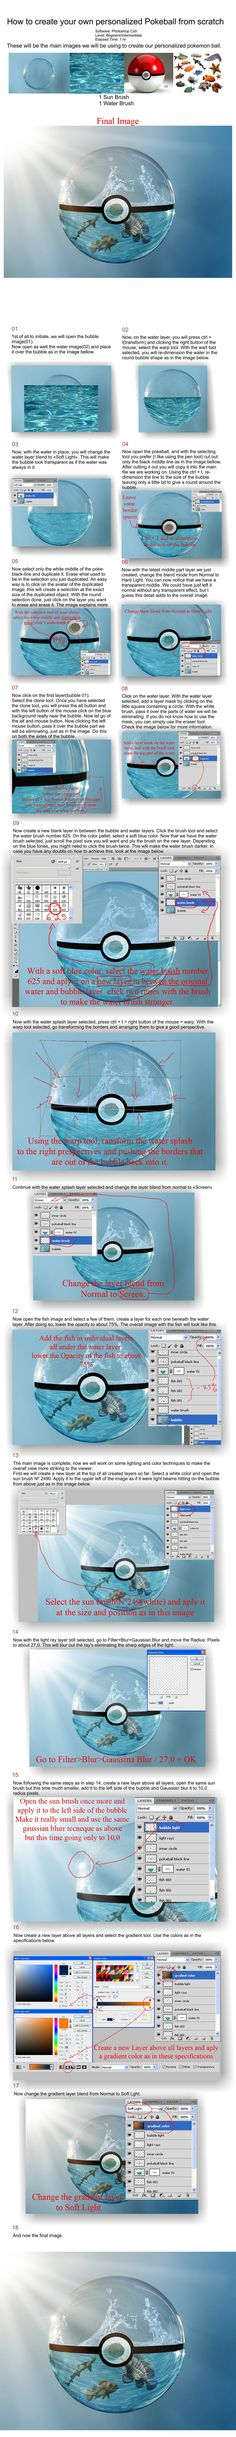 Pokemon Bubble Tutorial - Do this but search realistic pokemon and put the realistic evolutions of squirtle in it instead it looks AMAZING! Photoshop Effects, Photoshop Actions, Photoshop Brushes, Photoshop Logo, Photoshop Lessons, Cool Photoshop, Photoshop Projects, Photoshop Design, Photoshop Ideas